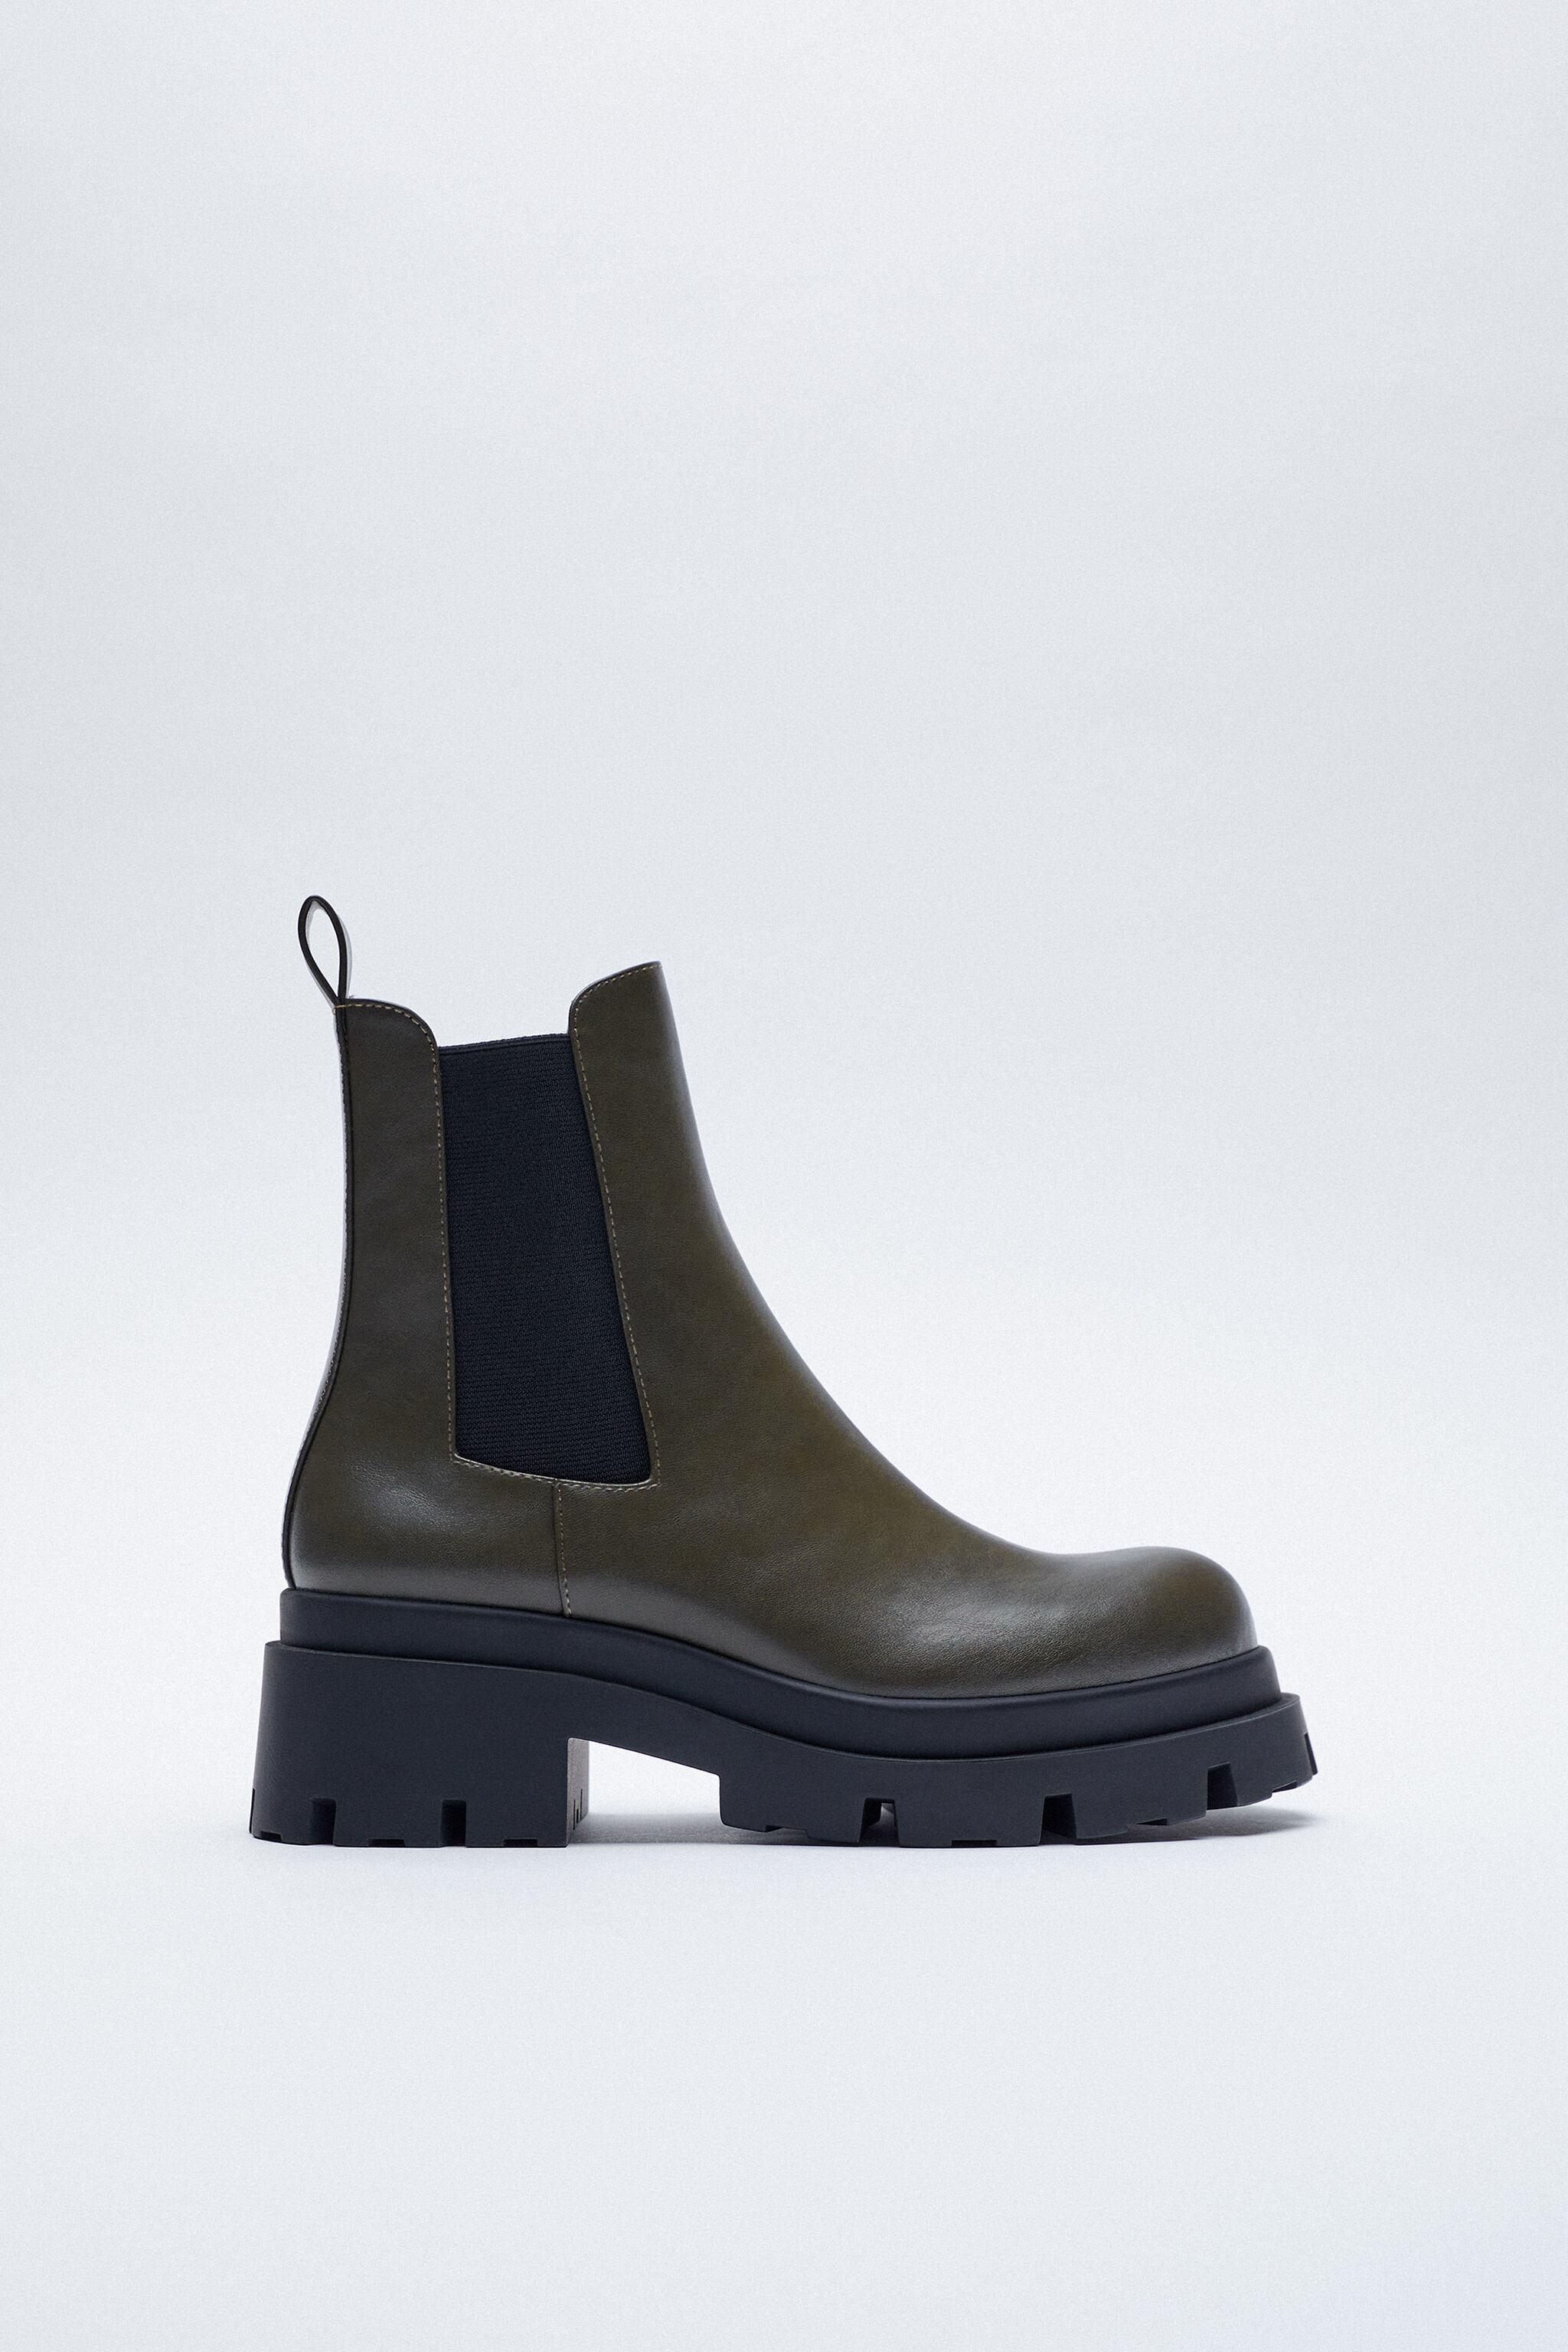 LOW HEELED LUG SOLE ANKLE BOOTS